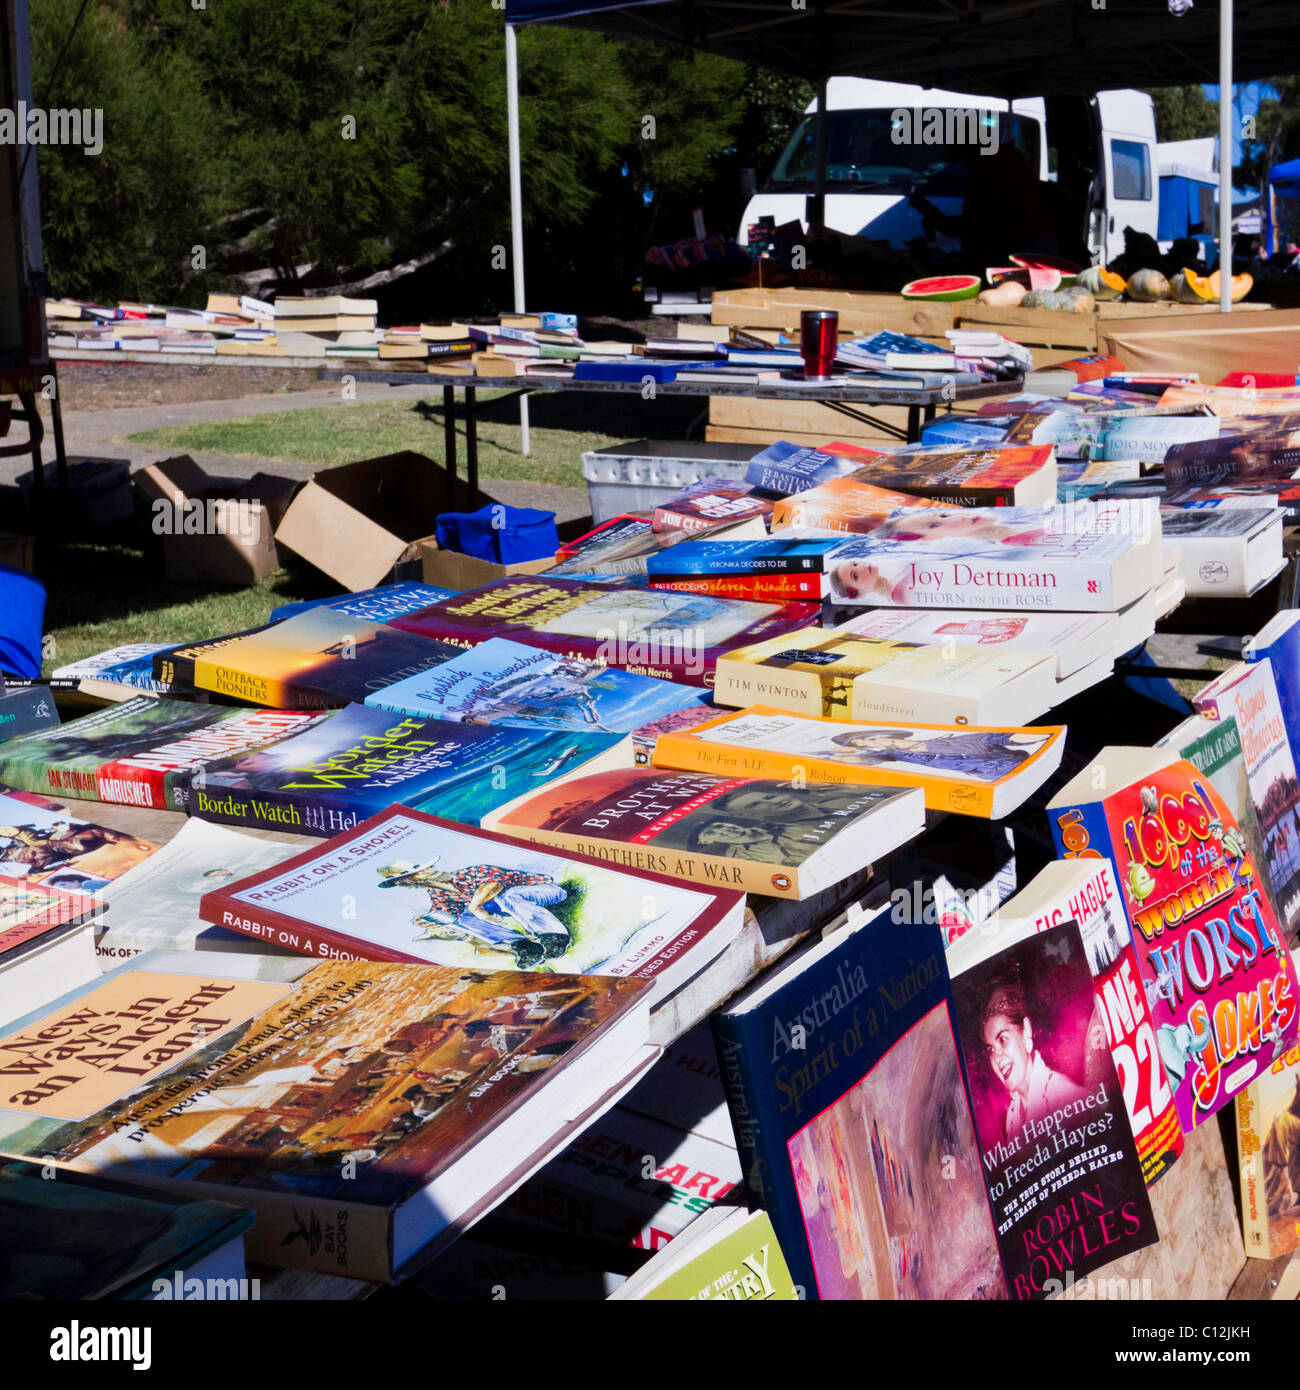 Books for sale at Car Boot market, vendors selling produce and second hand goods. - Stock Image